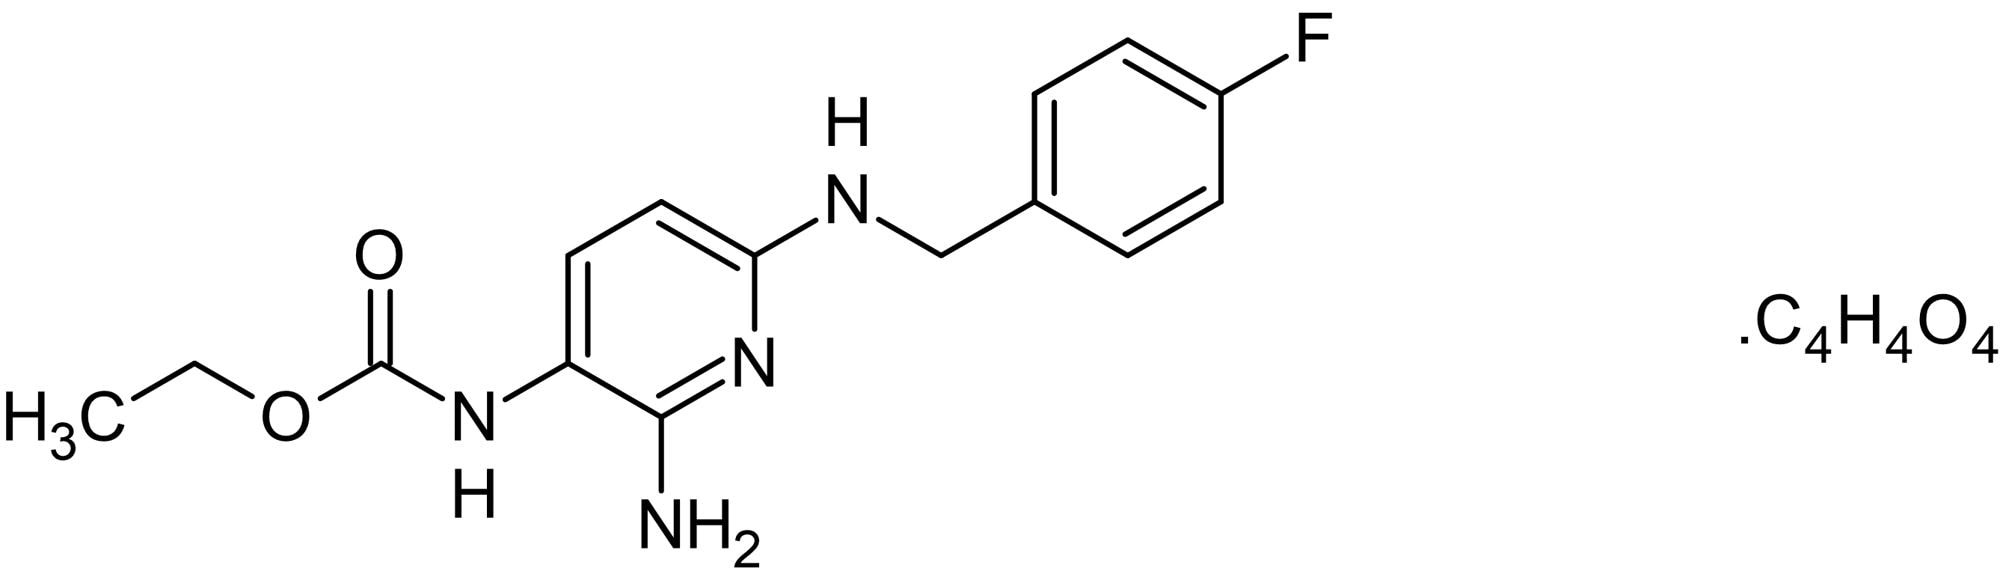 Chemical Structure - Flupirtine maleate, Neuronal potassium channel opener (ab142432)